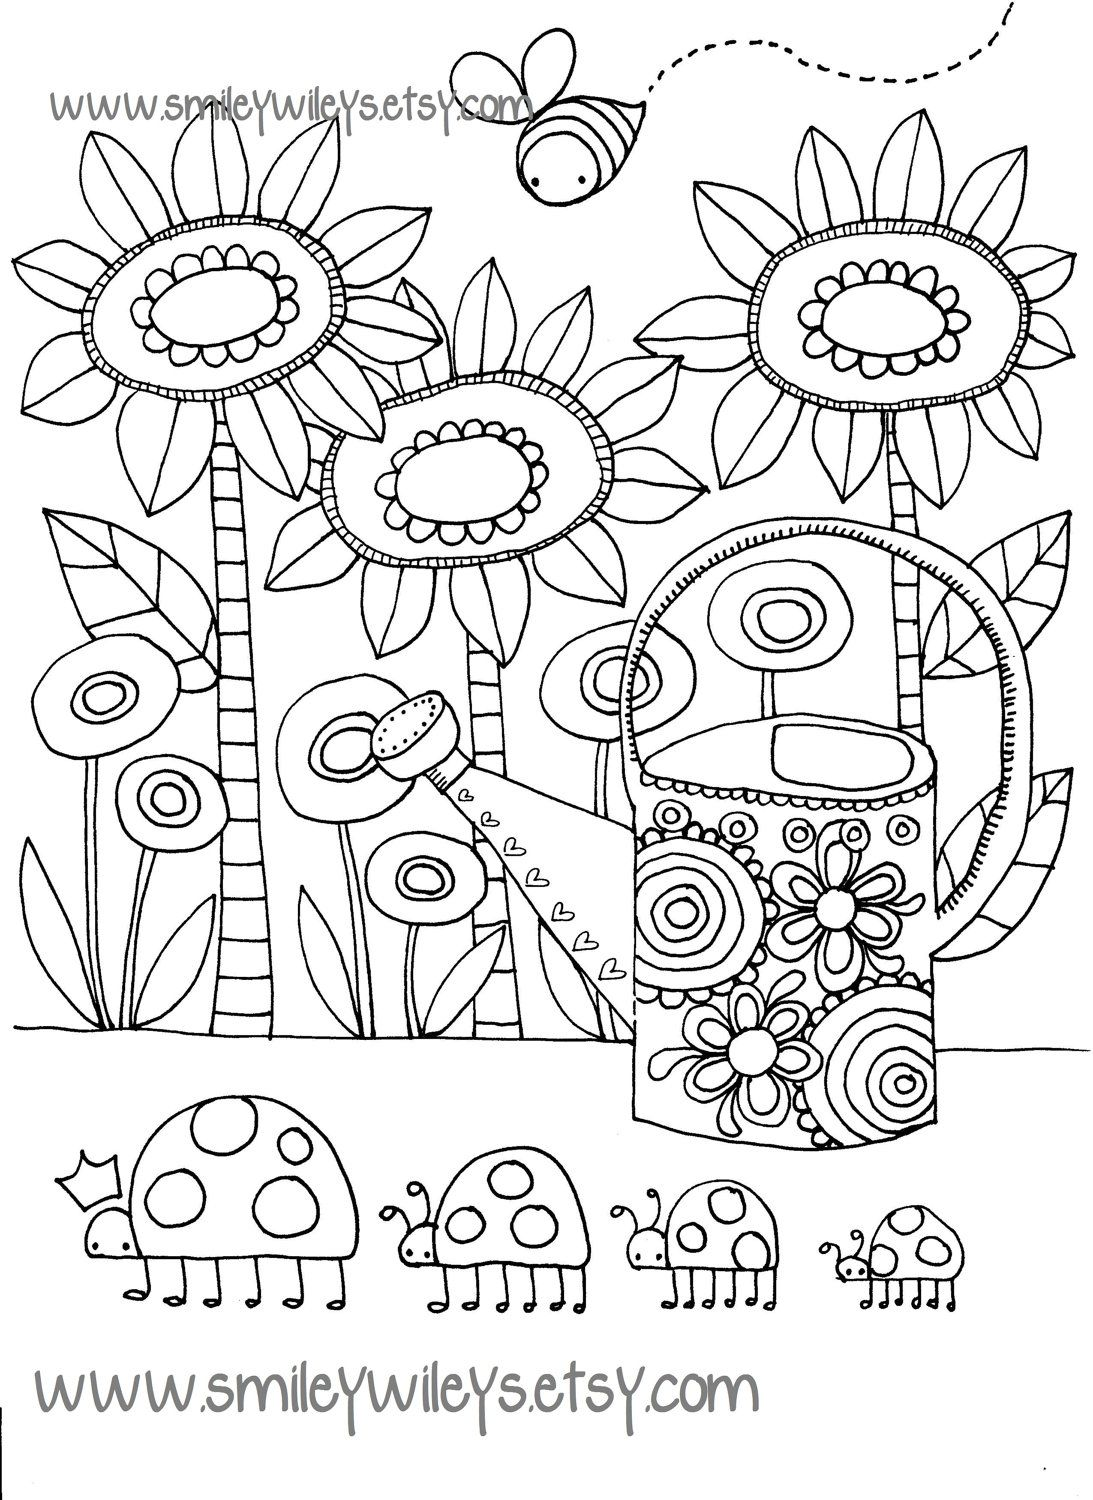 Happy Garden Printable Colouring Book Pages Set Of Smileywileys